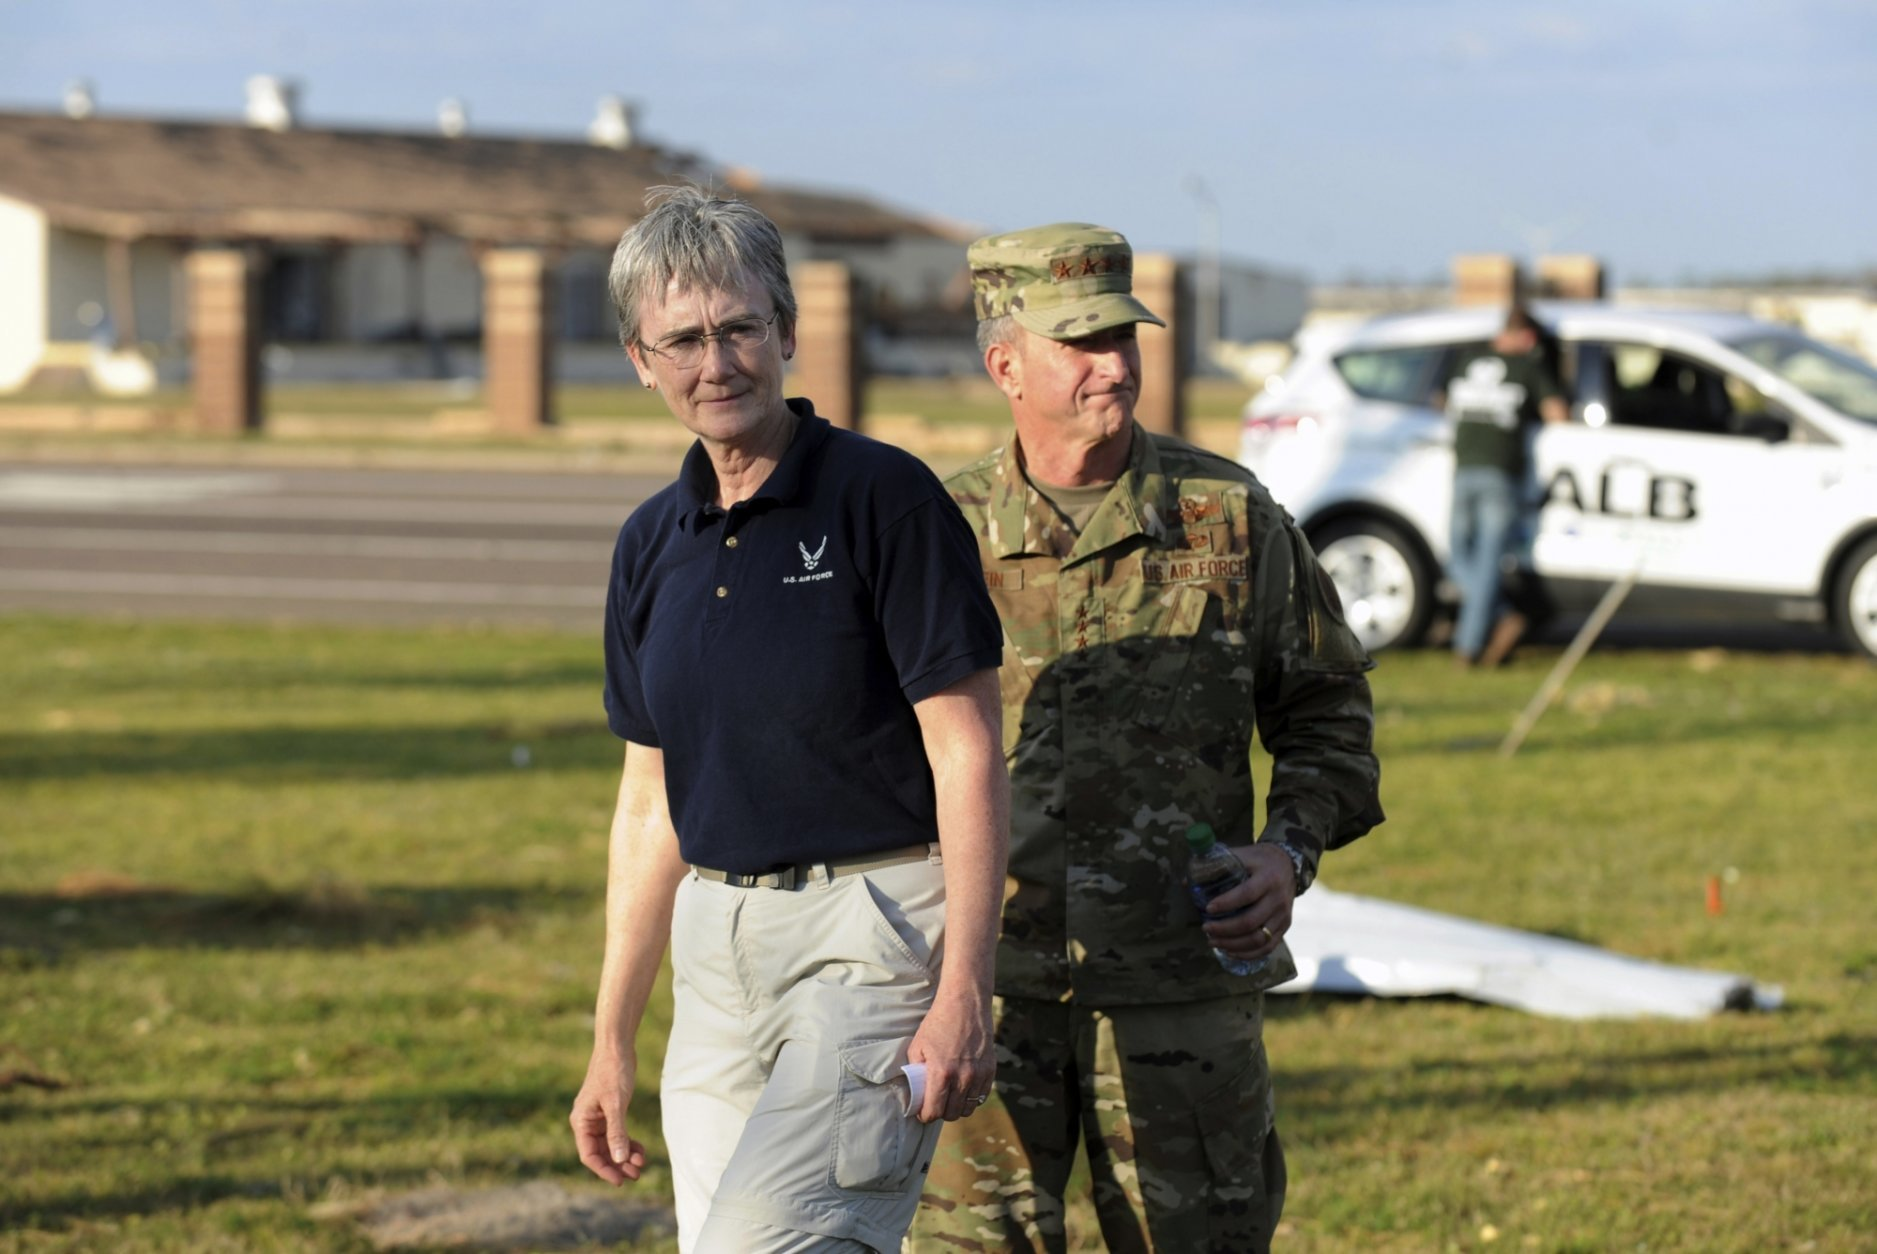 In this Sunday, Oct. 14, 2018, photo, Secretary of the U.S. Air Force Heather Wilson and U.S. Air Force Chief of Staff David Goldfein walk to a briefing at Tyndall Air Force Base in Florida to speak to reporters about the status of the base, which suffered significant damage from Hurricane Michael. (Carlos R. Munoz/Sarasota Herald-Tribune via AP)